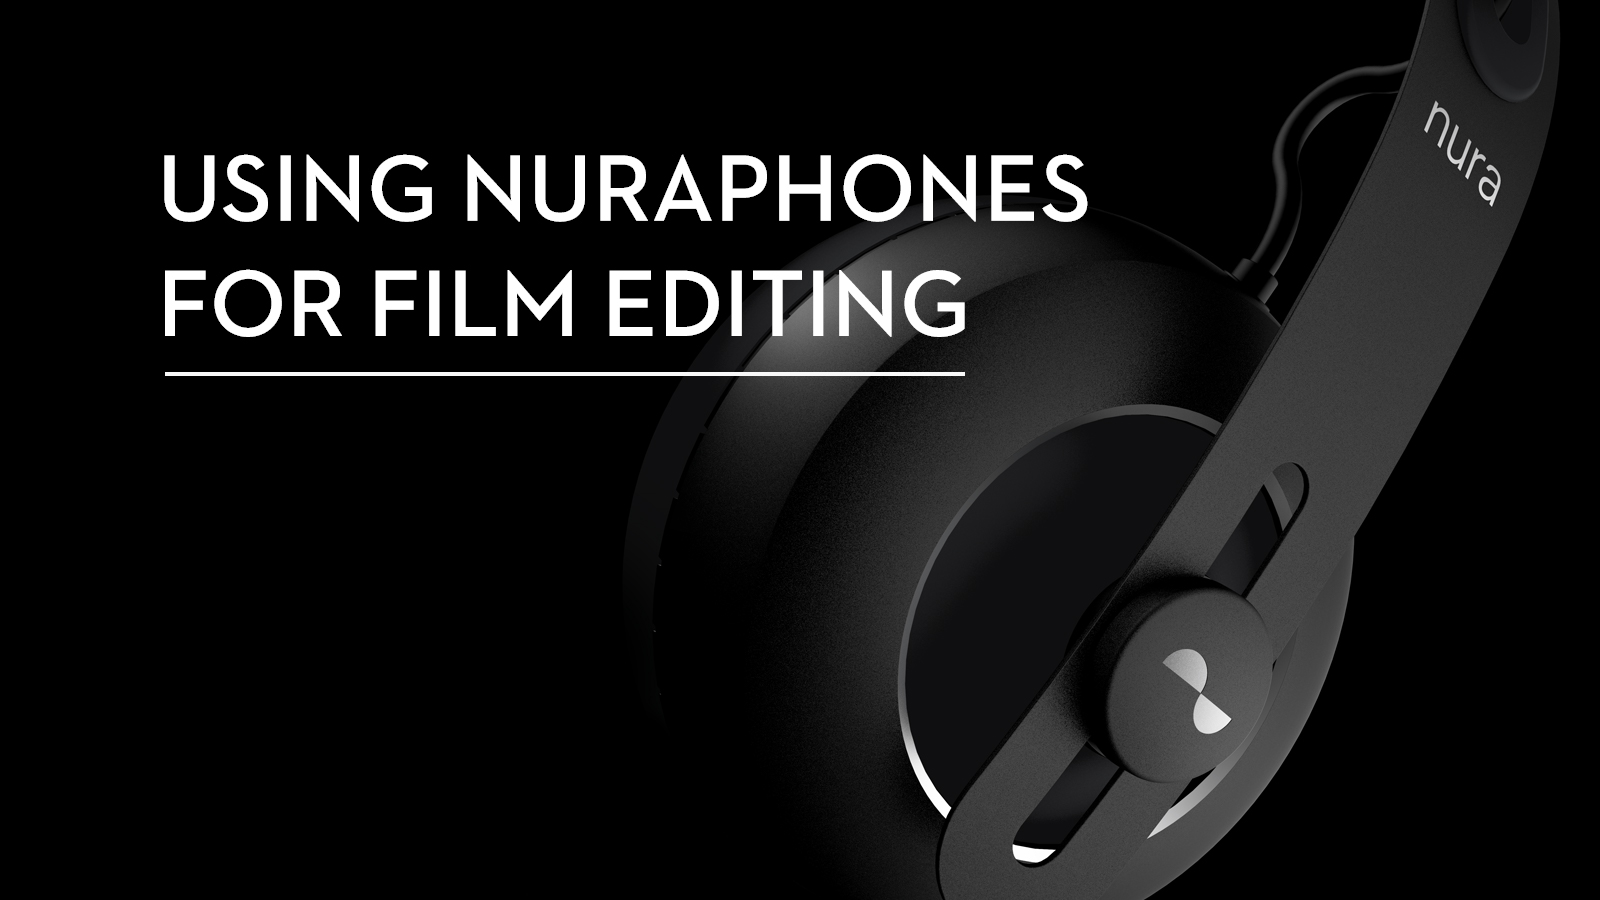 20% off nuraphone headphones